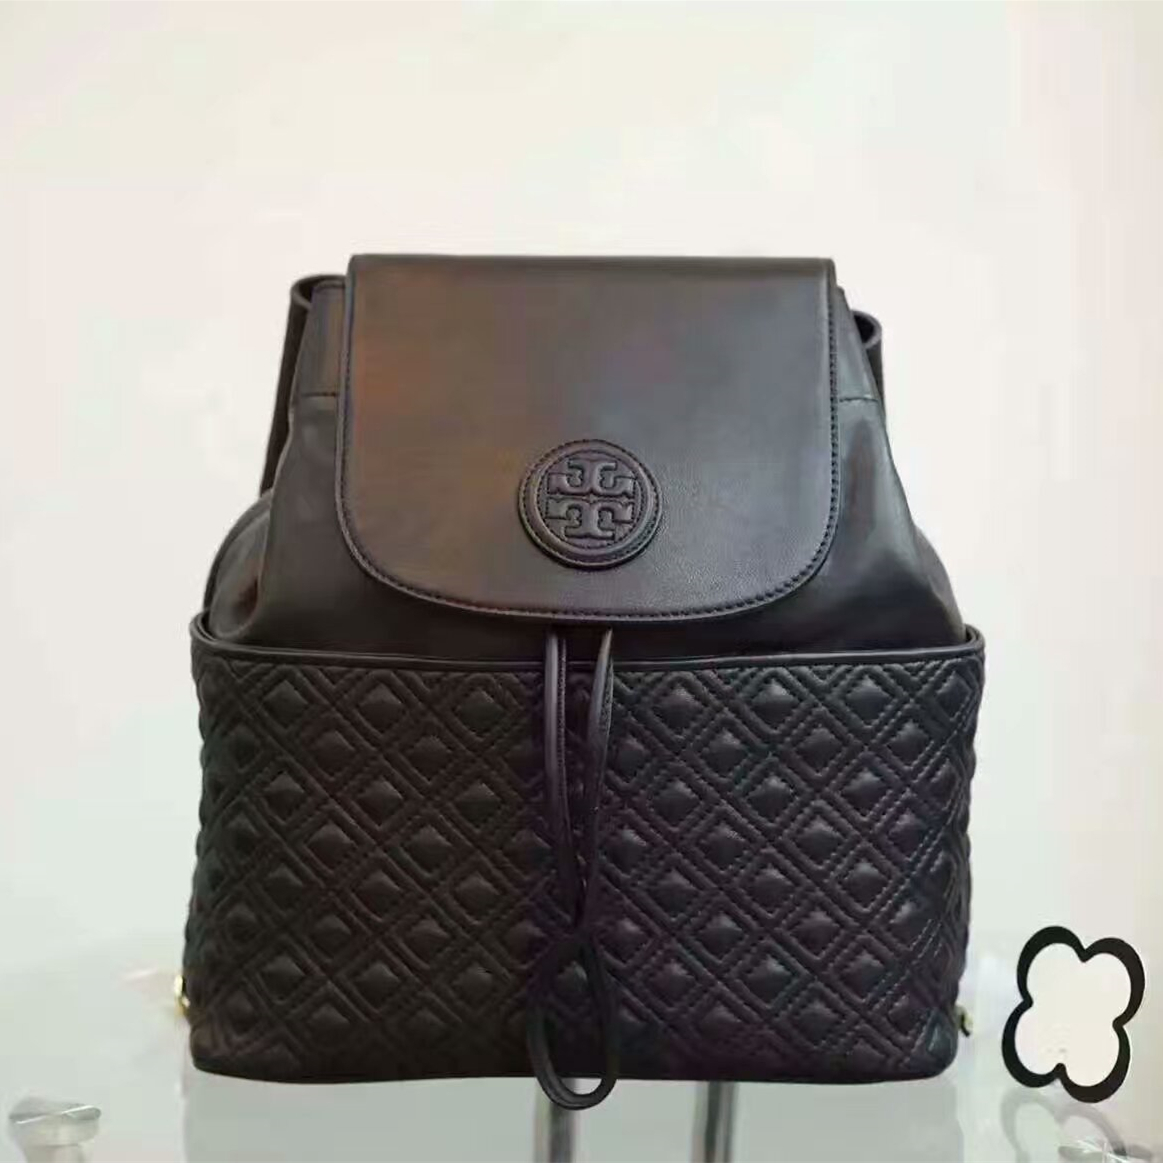 574f6beb5a6 Mmexport1482764727026. Mmexport1482764727026. Tory Burch Marion Quilted  Backpack. Tory Burch Marion Quilted Backpack